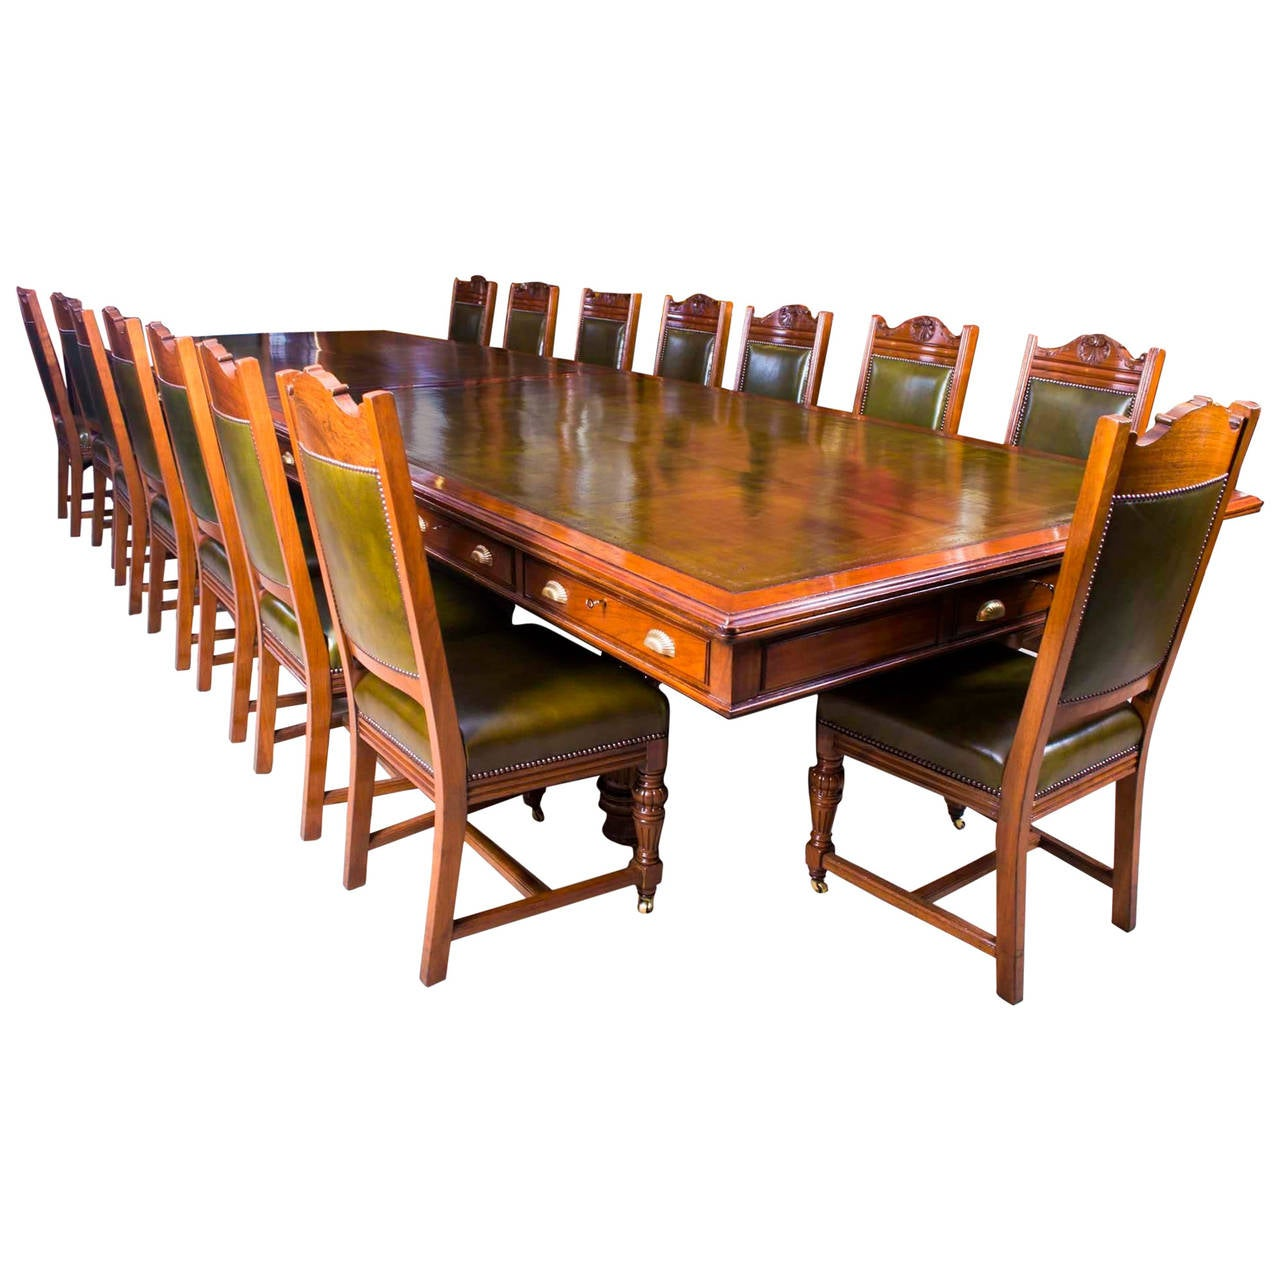 antique victorian boardroom table with 16 chairs circa 1850 at 1stdibs. Black Bedroom Furniture Sets. Home Design Ideas